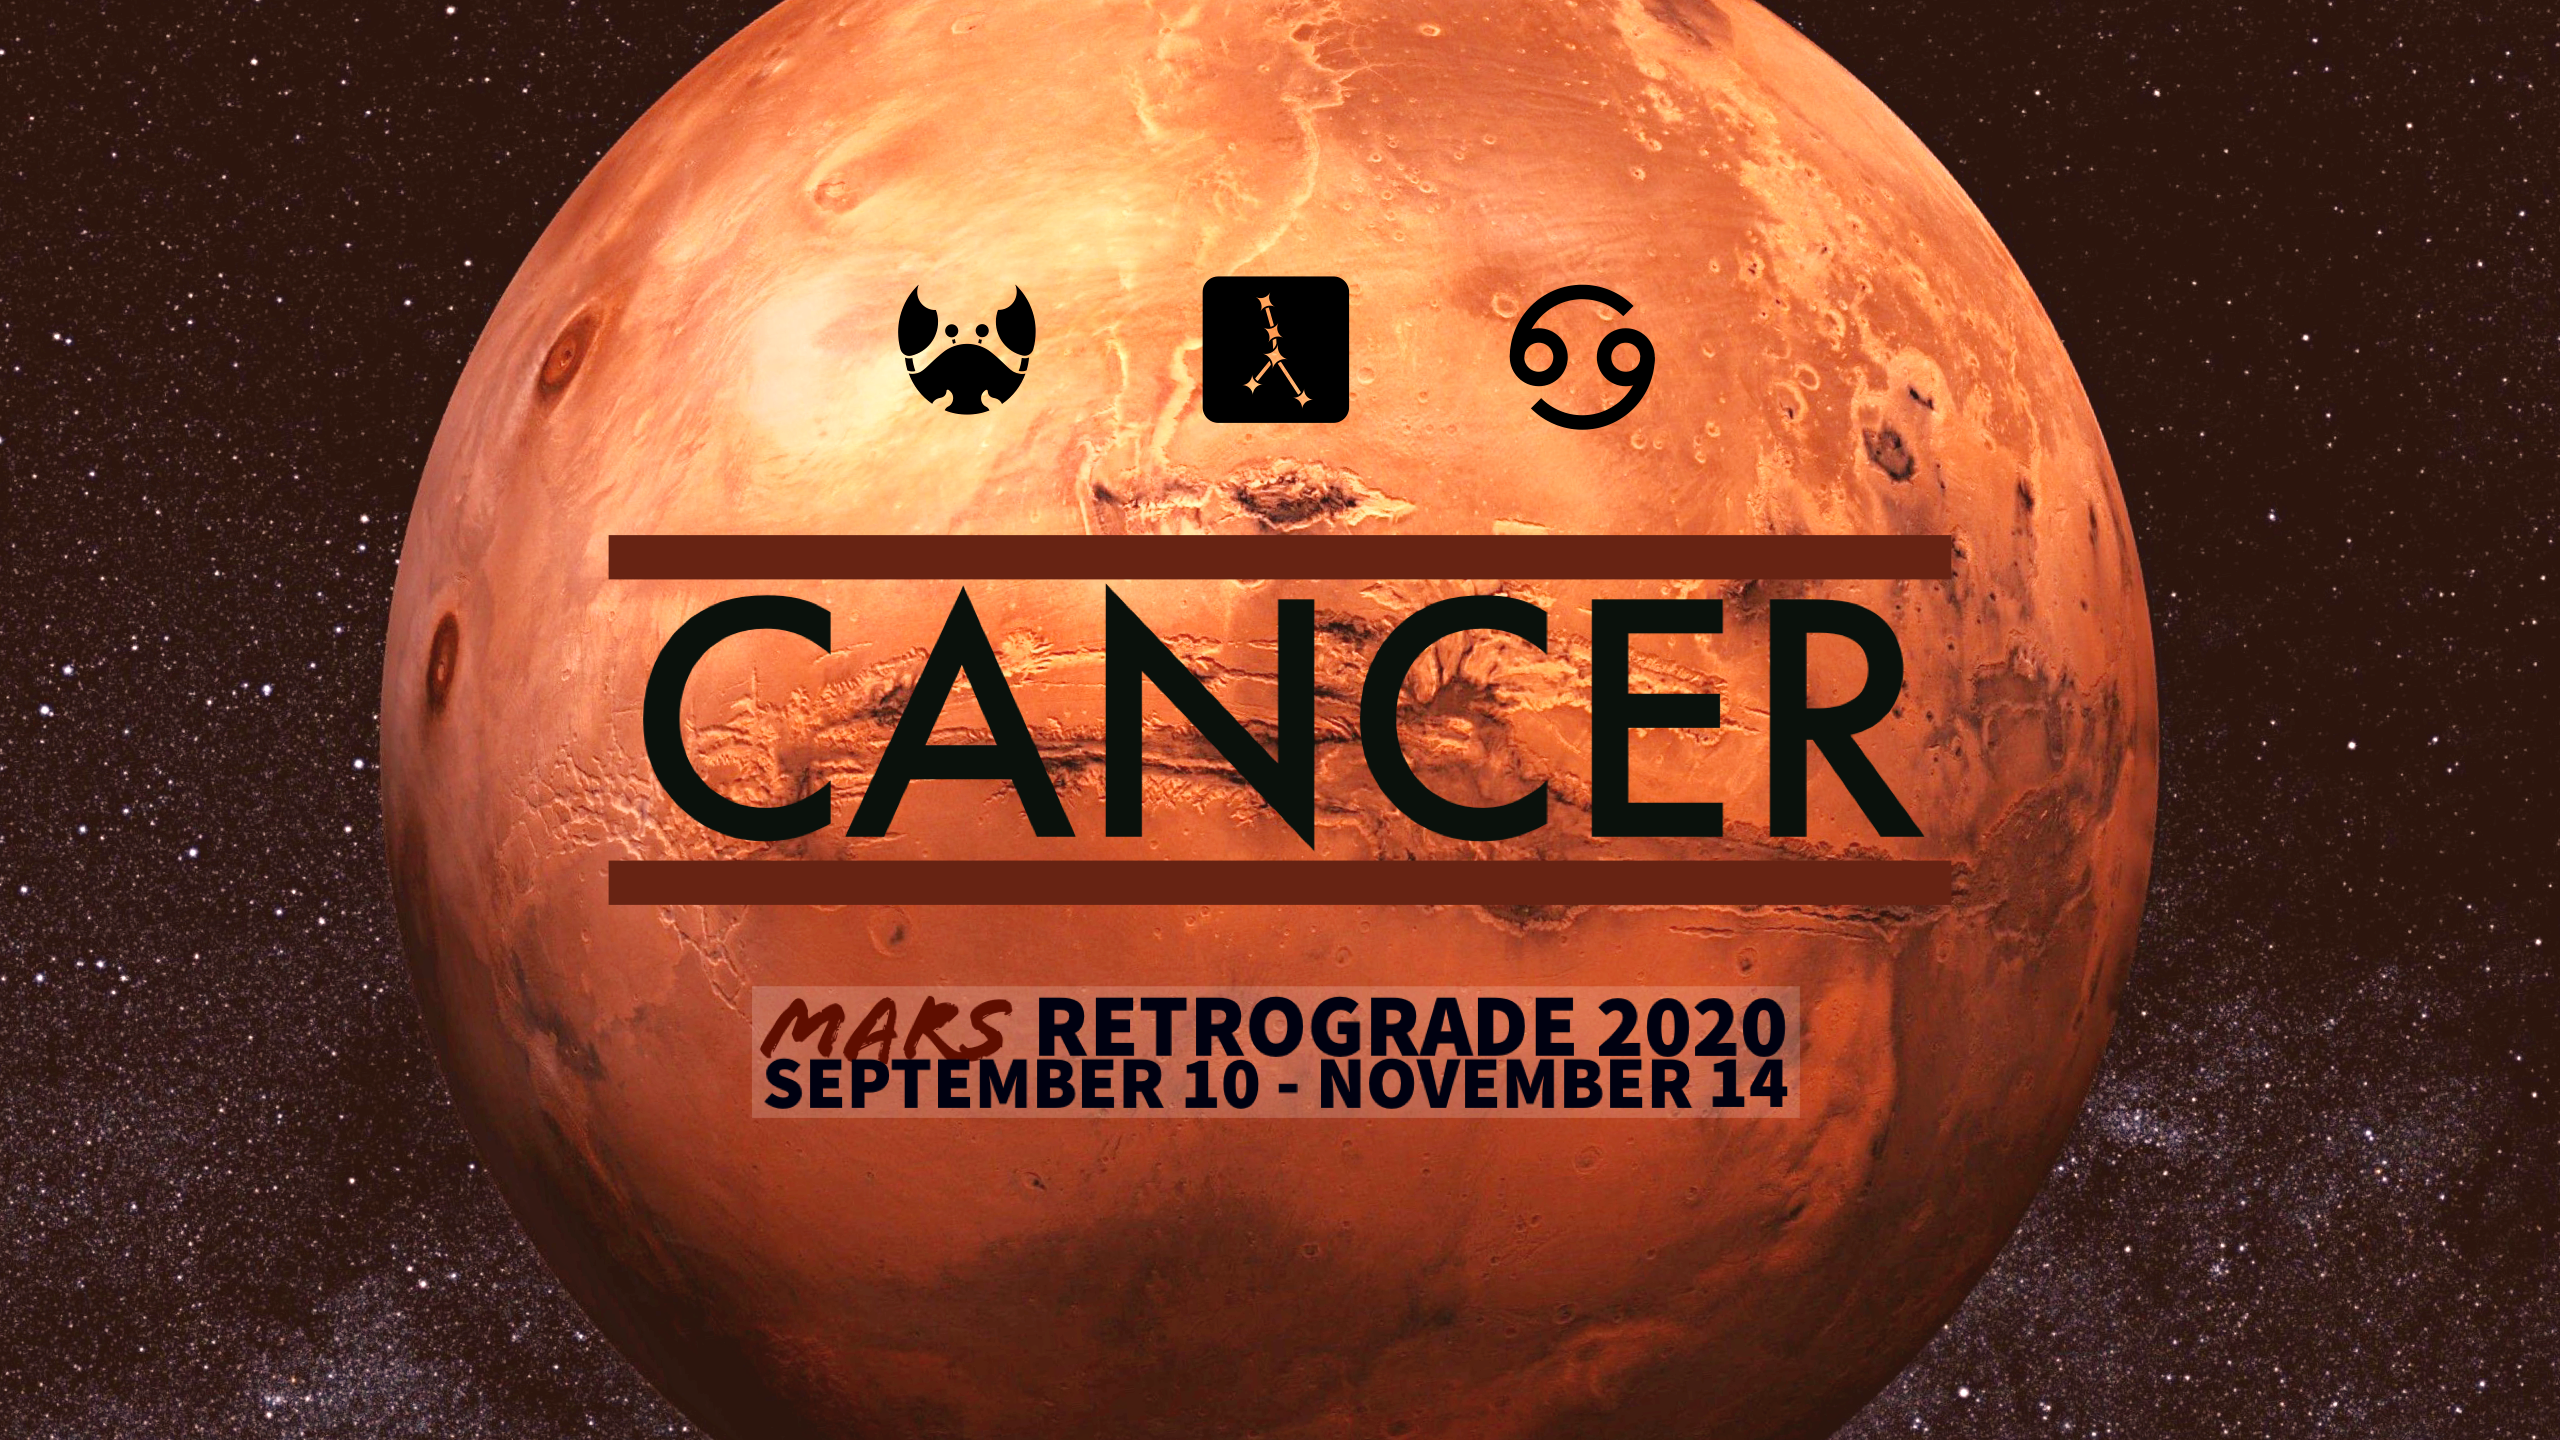 2020 Mars Retrograde:04 Cancer